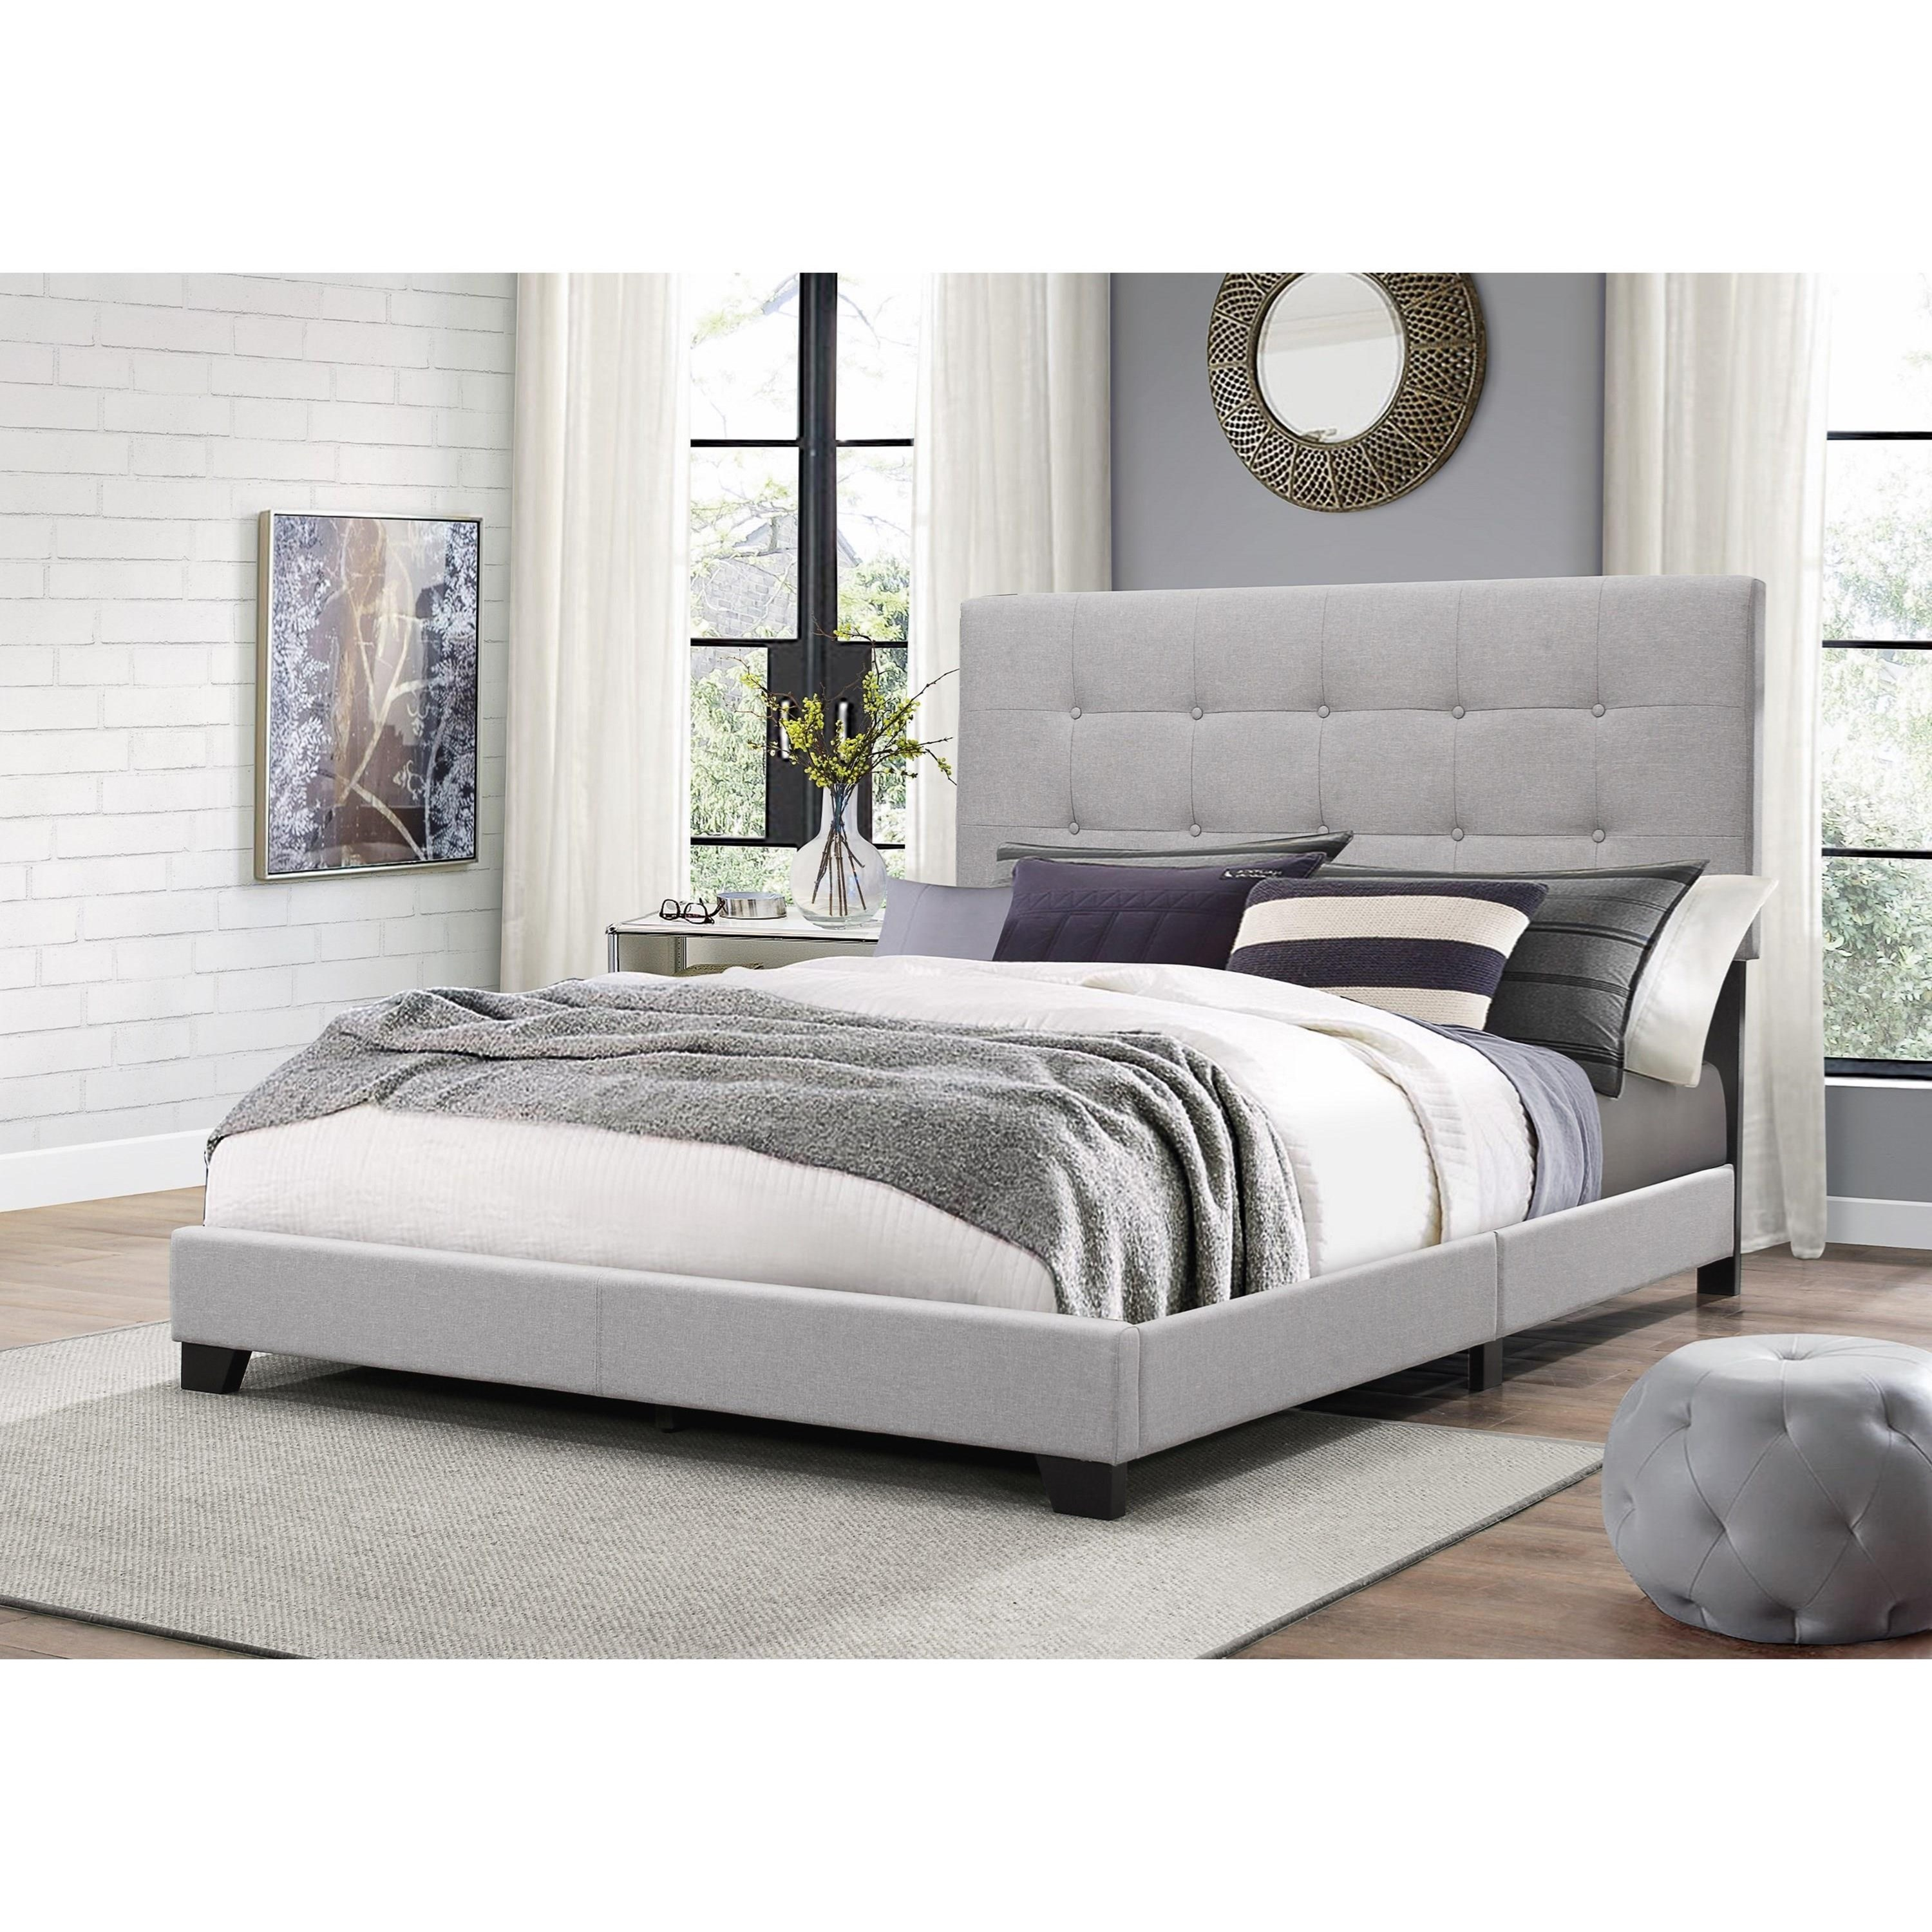 Florence King Upholstered Bed by Crown Mark at Nassau Furniture and Mattress